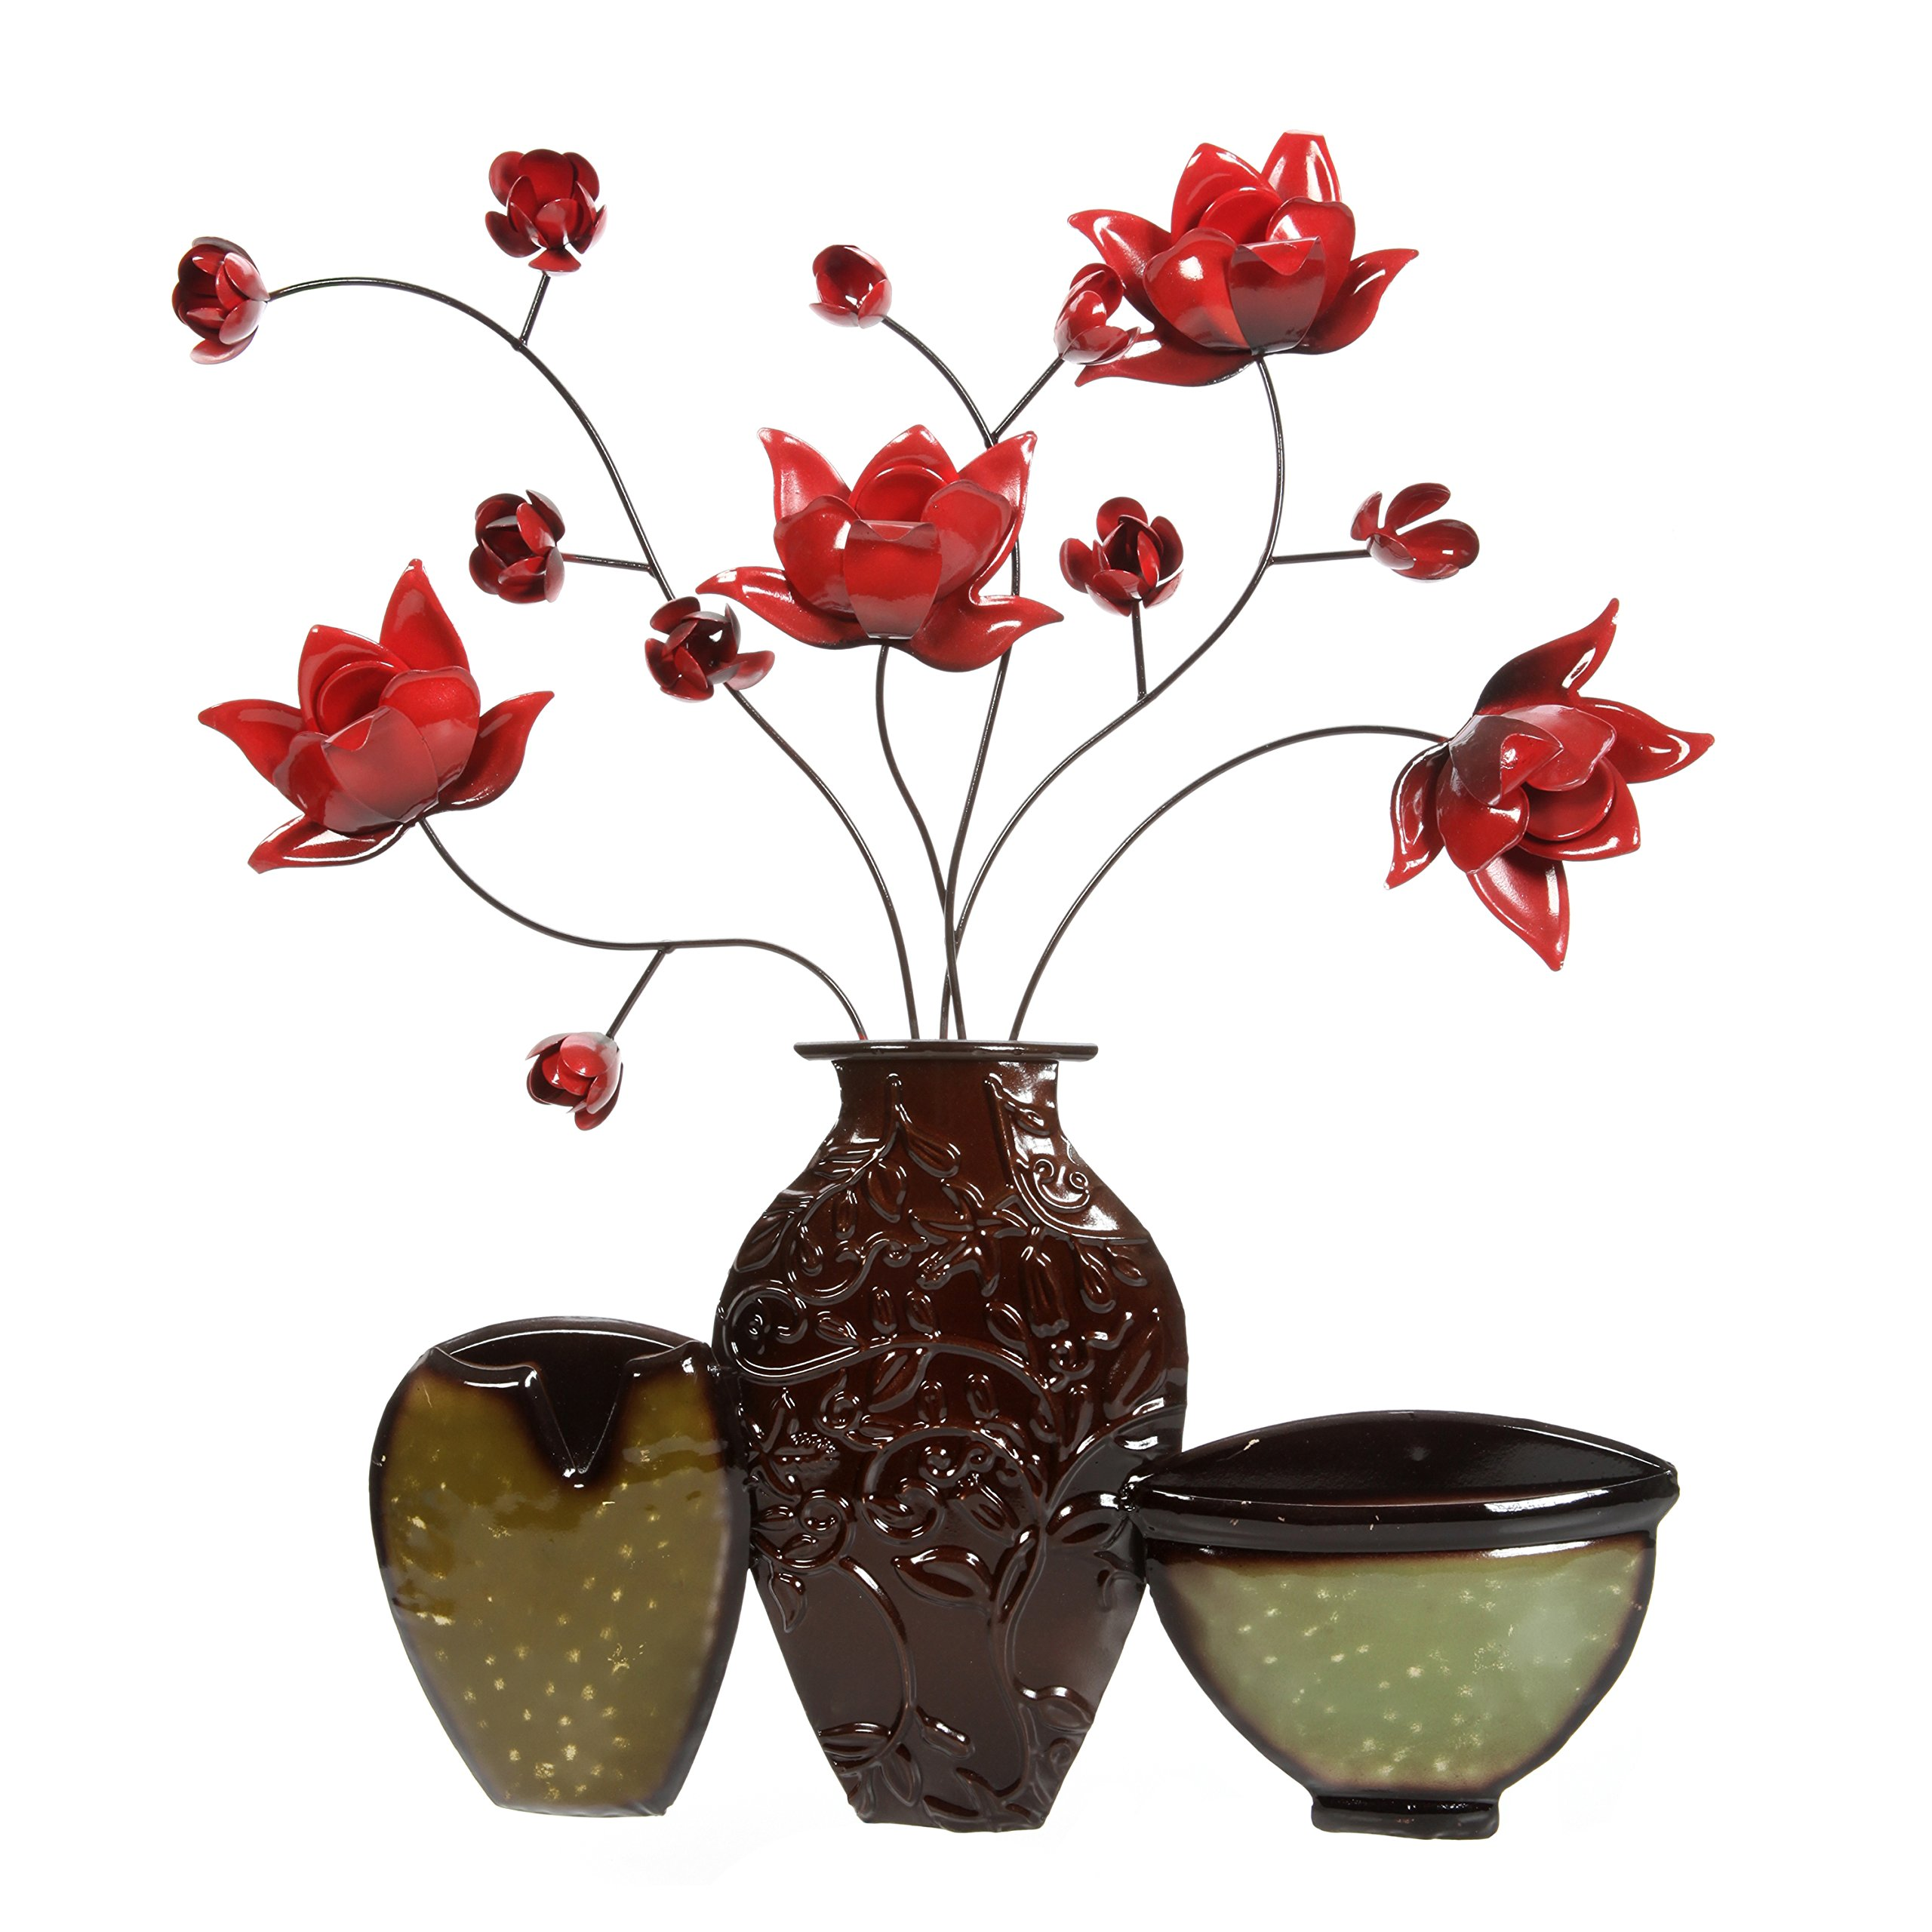 Hosley Metal Dimensional Wall Art-Vase, 23.25'' High. Ideal Gift for Wedding, Party, Spa, Home, Gardens P1